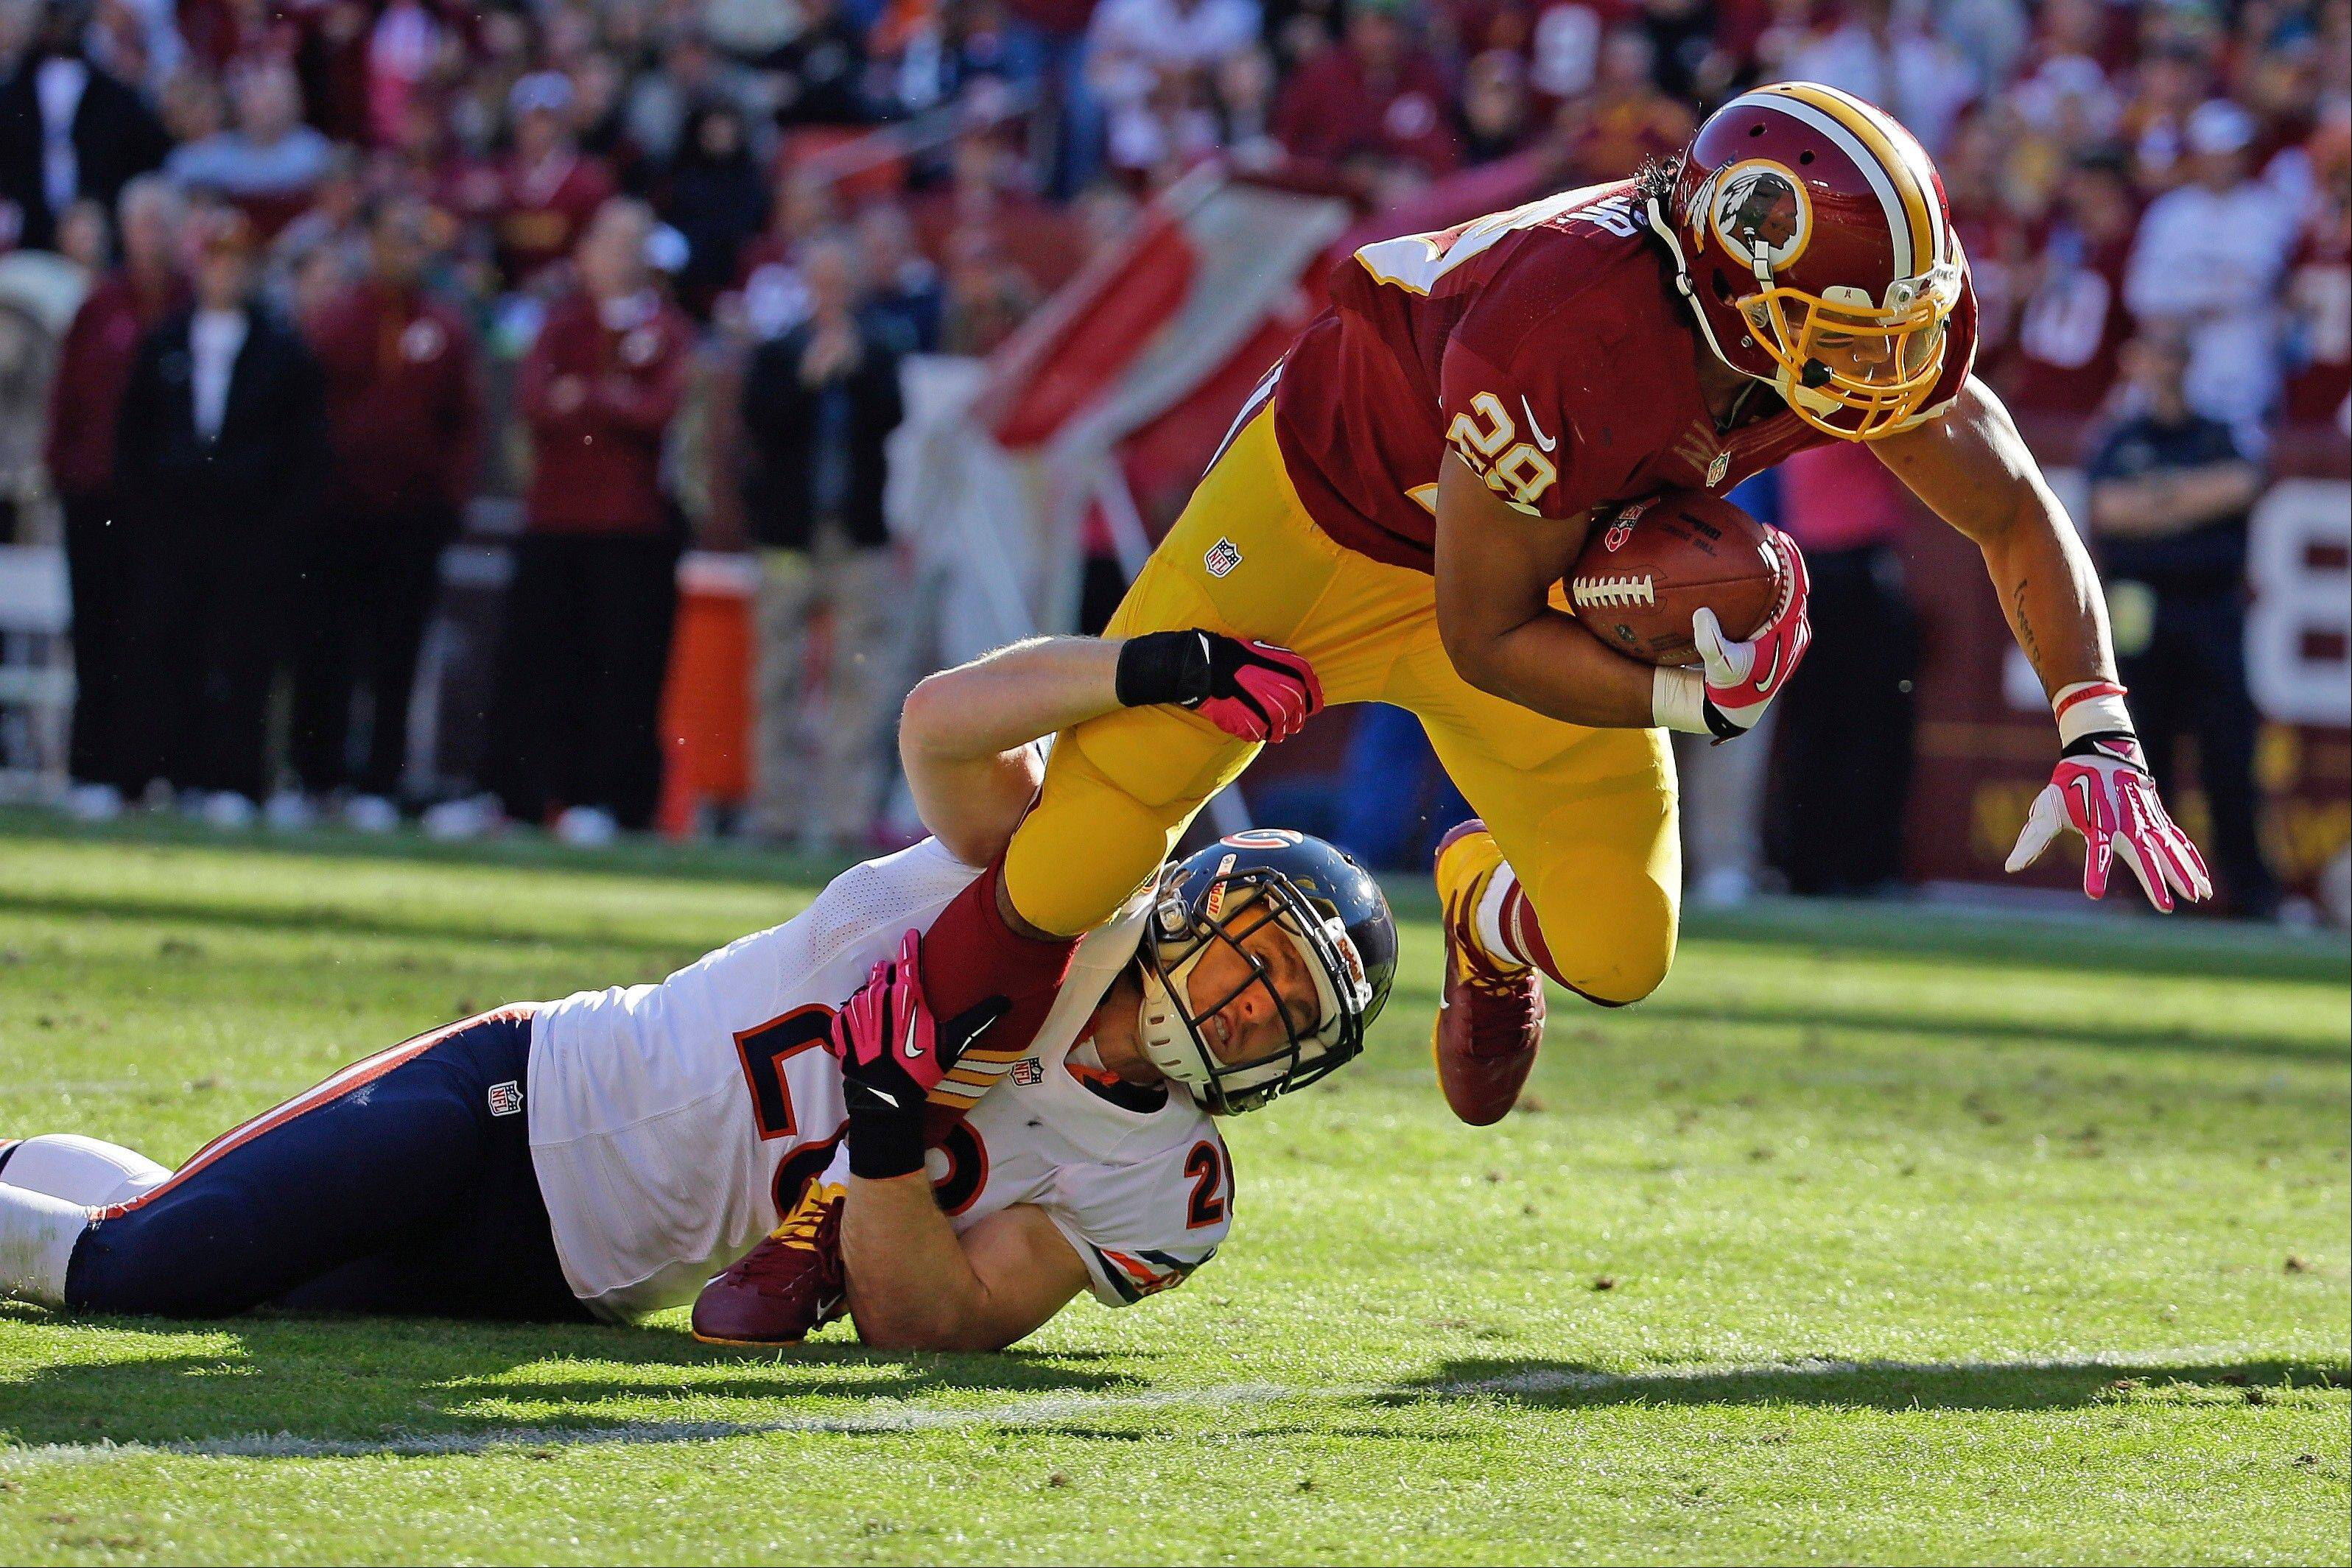 Washington's Roy Helu, right, is dragged to the turf by the Bears' Craig Steltz, left, in Sunday's second half.